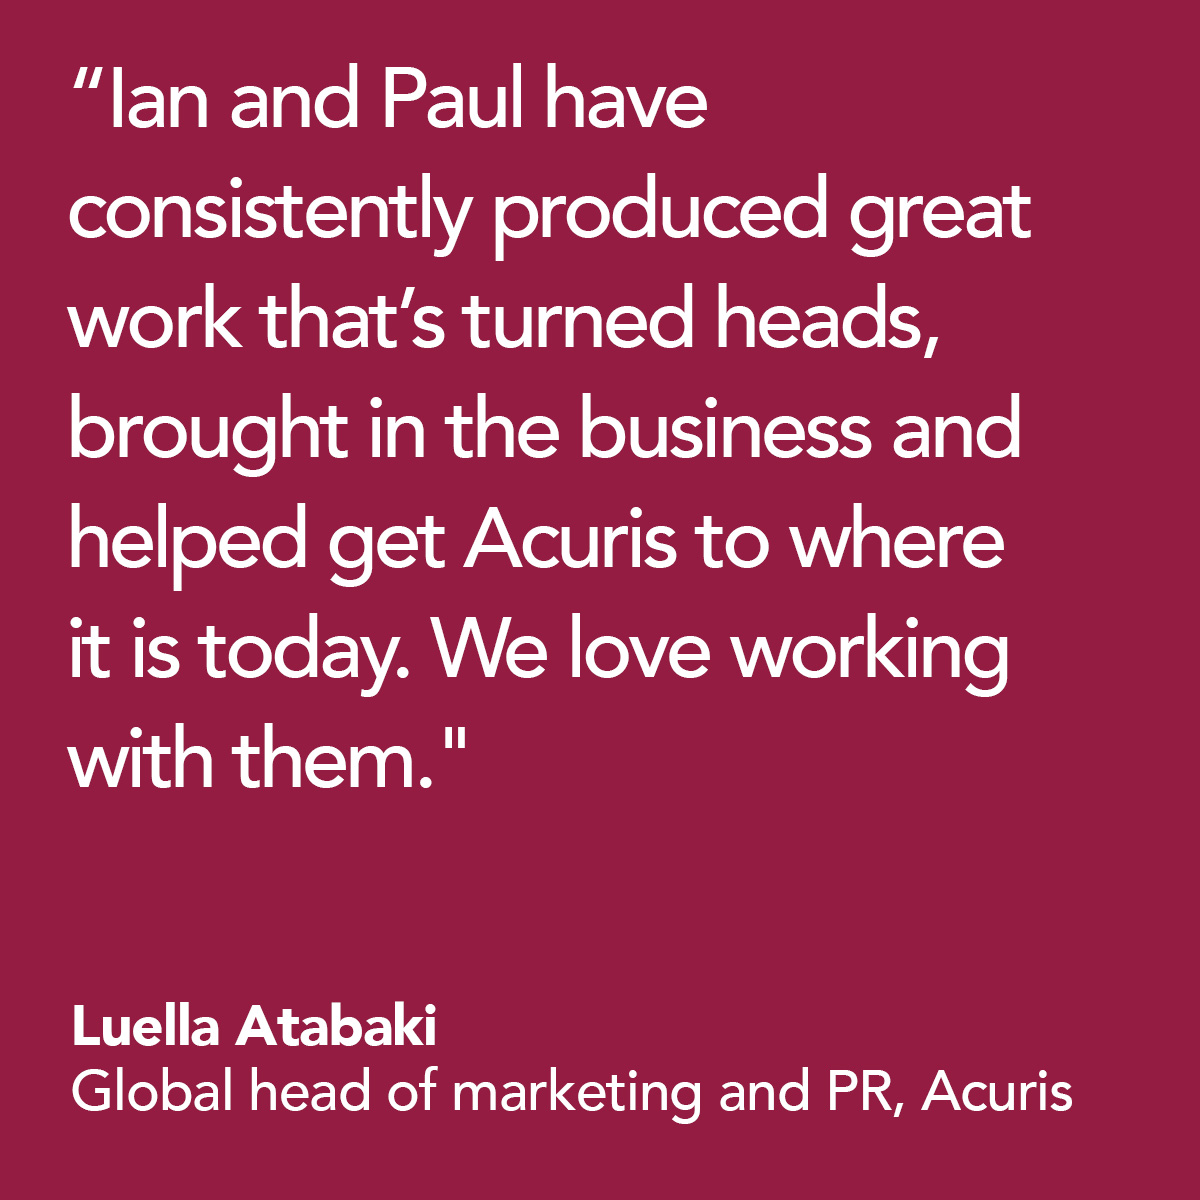 Ian and Paul have consistently produced great work that's turned heads, brought in the business and helped to get Acuris to where it is today. We love working with them. - Luella Aktabaki, Global head of marketing and PR, Acuris